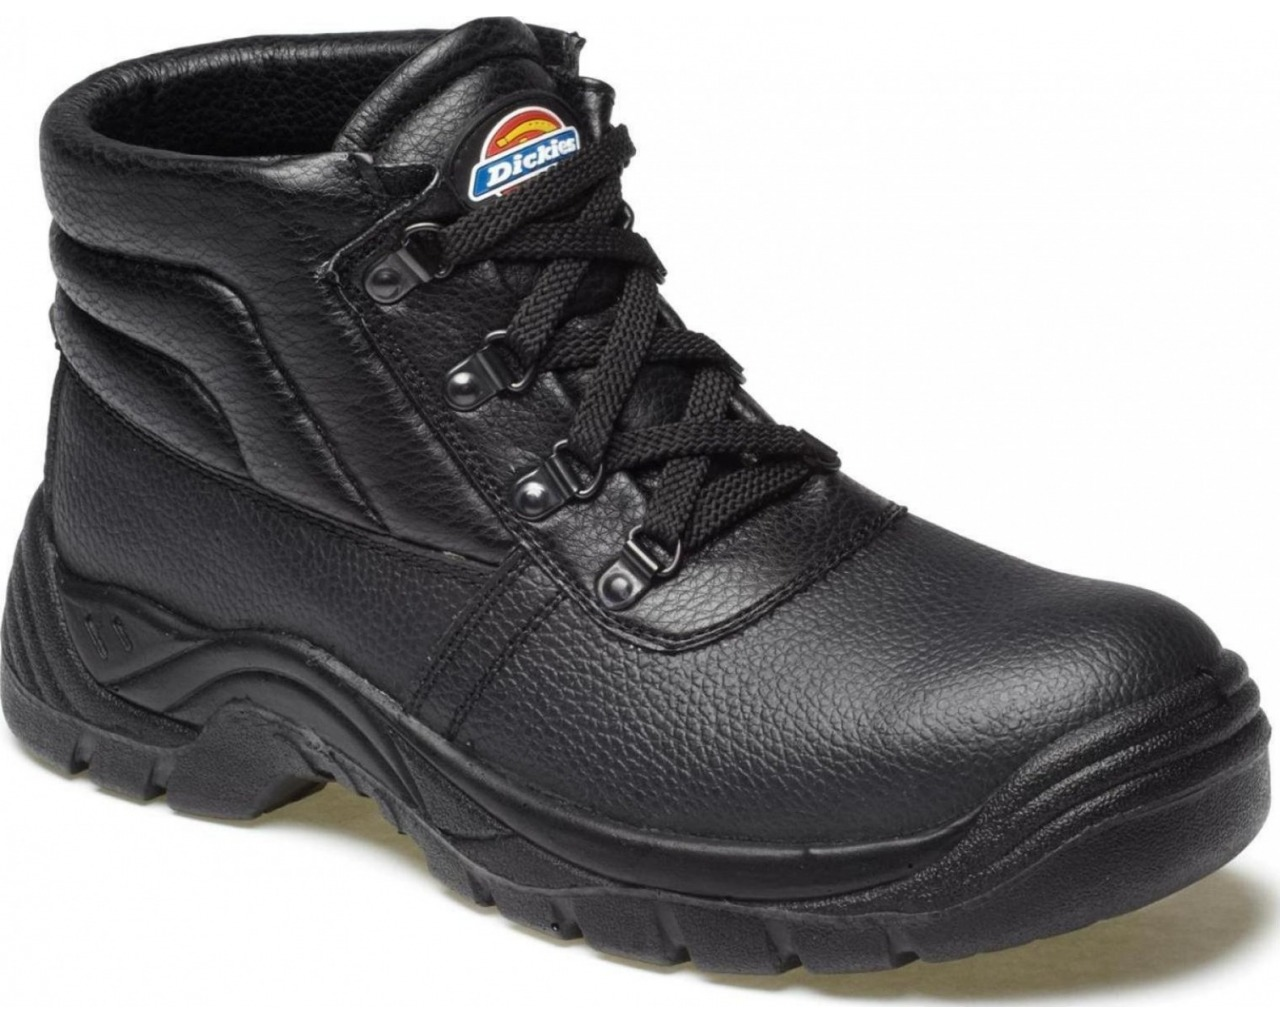 safety boots dickies redland safety chukka boot (sizes 3-14) - black ZDYJRHV